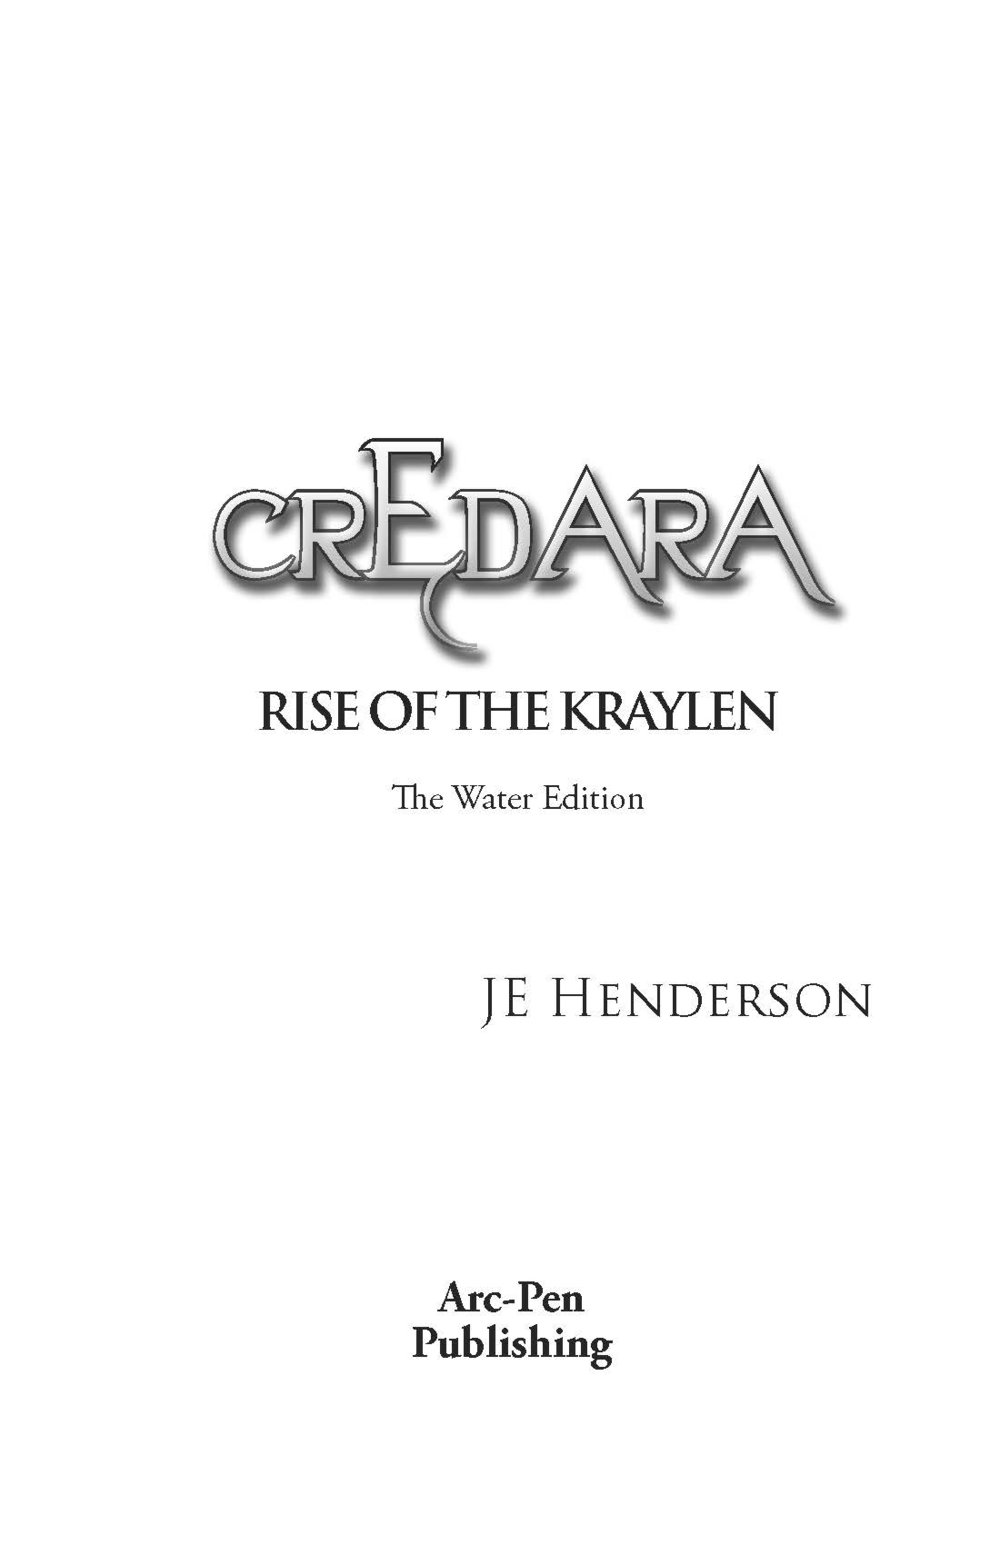 ISBN 9780988249431 CREDARA-ROTK H-Water Interior 3 Chapter 1 9-2-18_Page_01.jpg